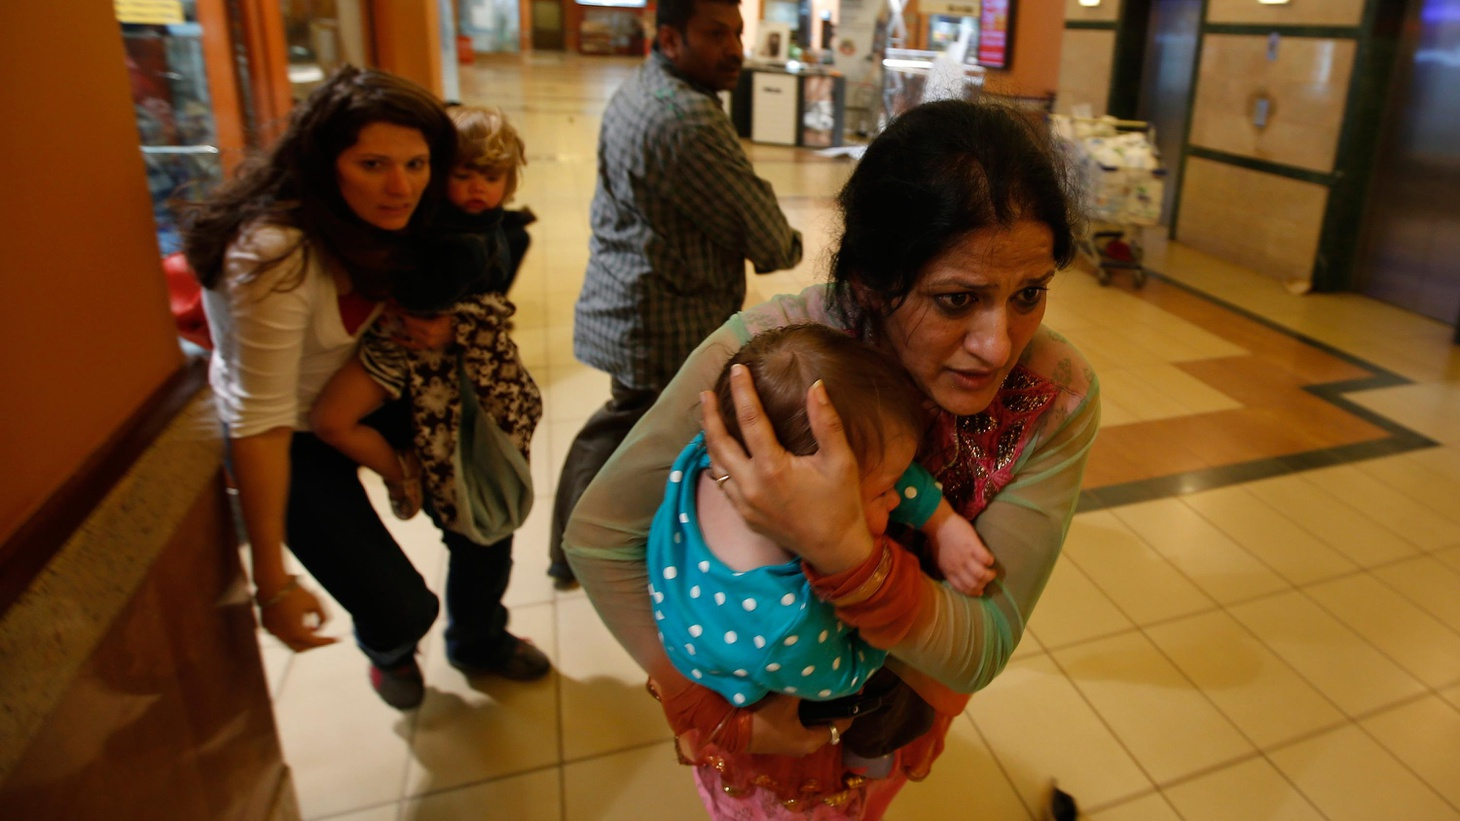 Authorities in Kenya say the assault on Nairobi's Westgate shopping center is over after three days of terror for civilians who'd been going about routine business.